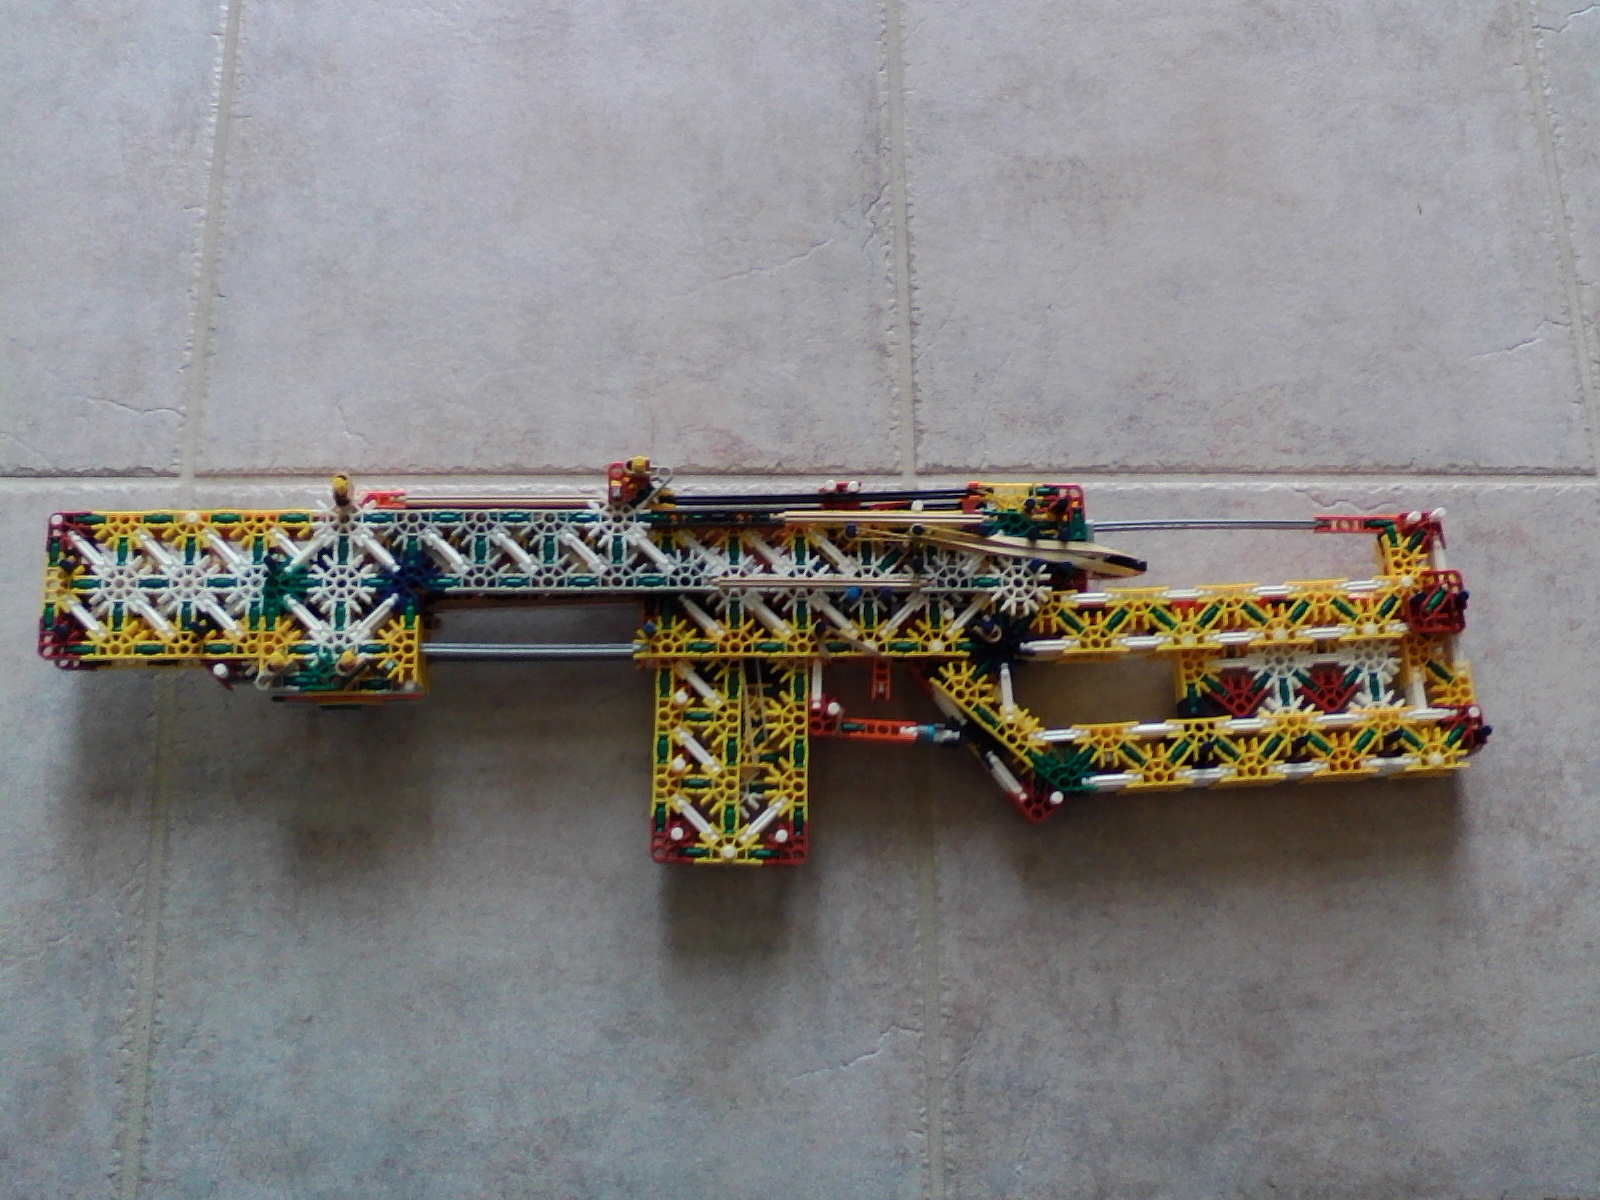 Knex Pump-Action Rifle